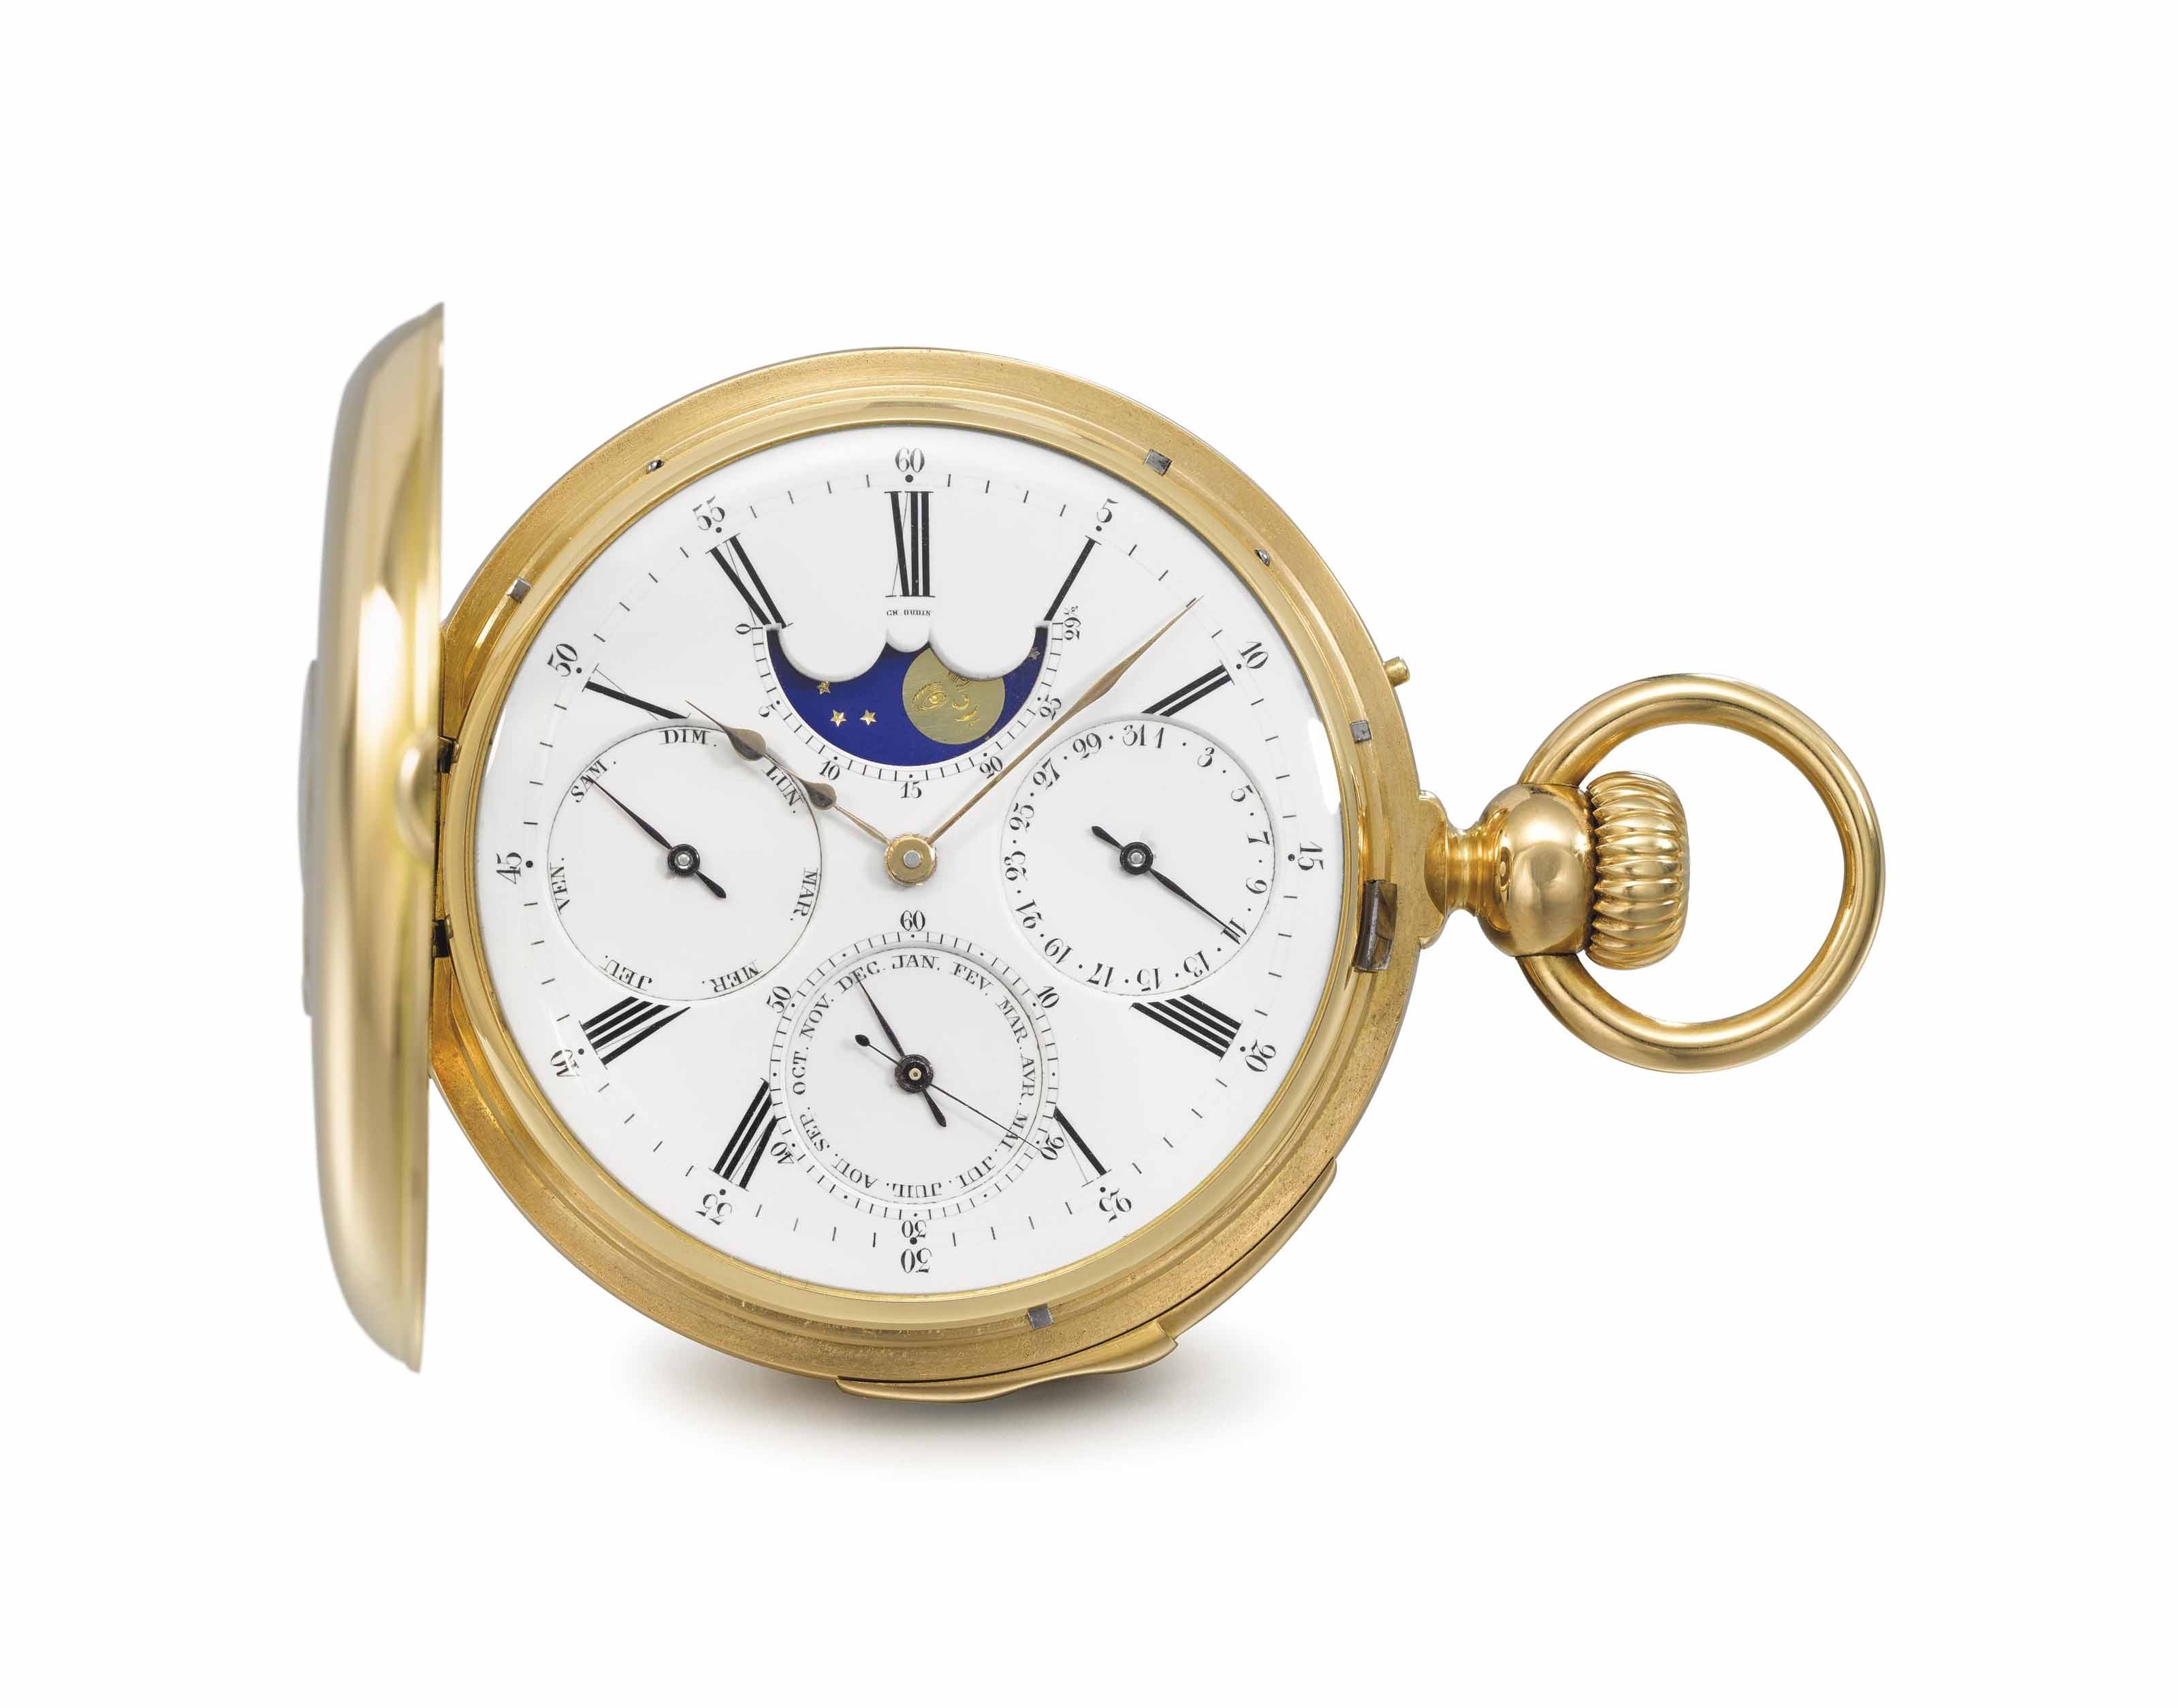 Louis Audemars, made for Charles Oudin. A fine, rare and early 18K gold half hunter case quarter repeating full calendar keyless lever watch with moon phases